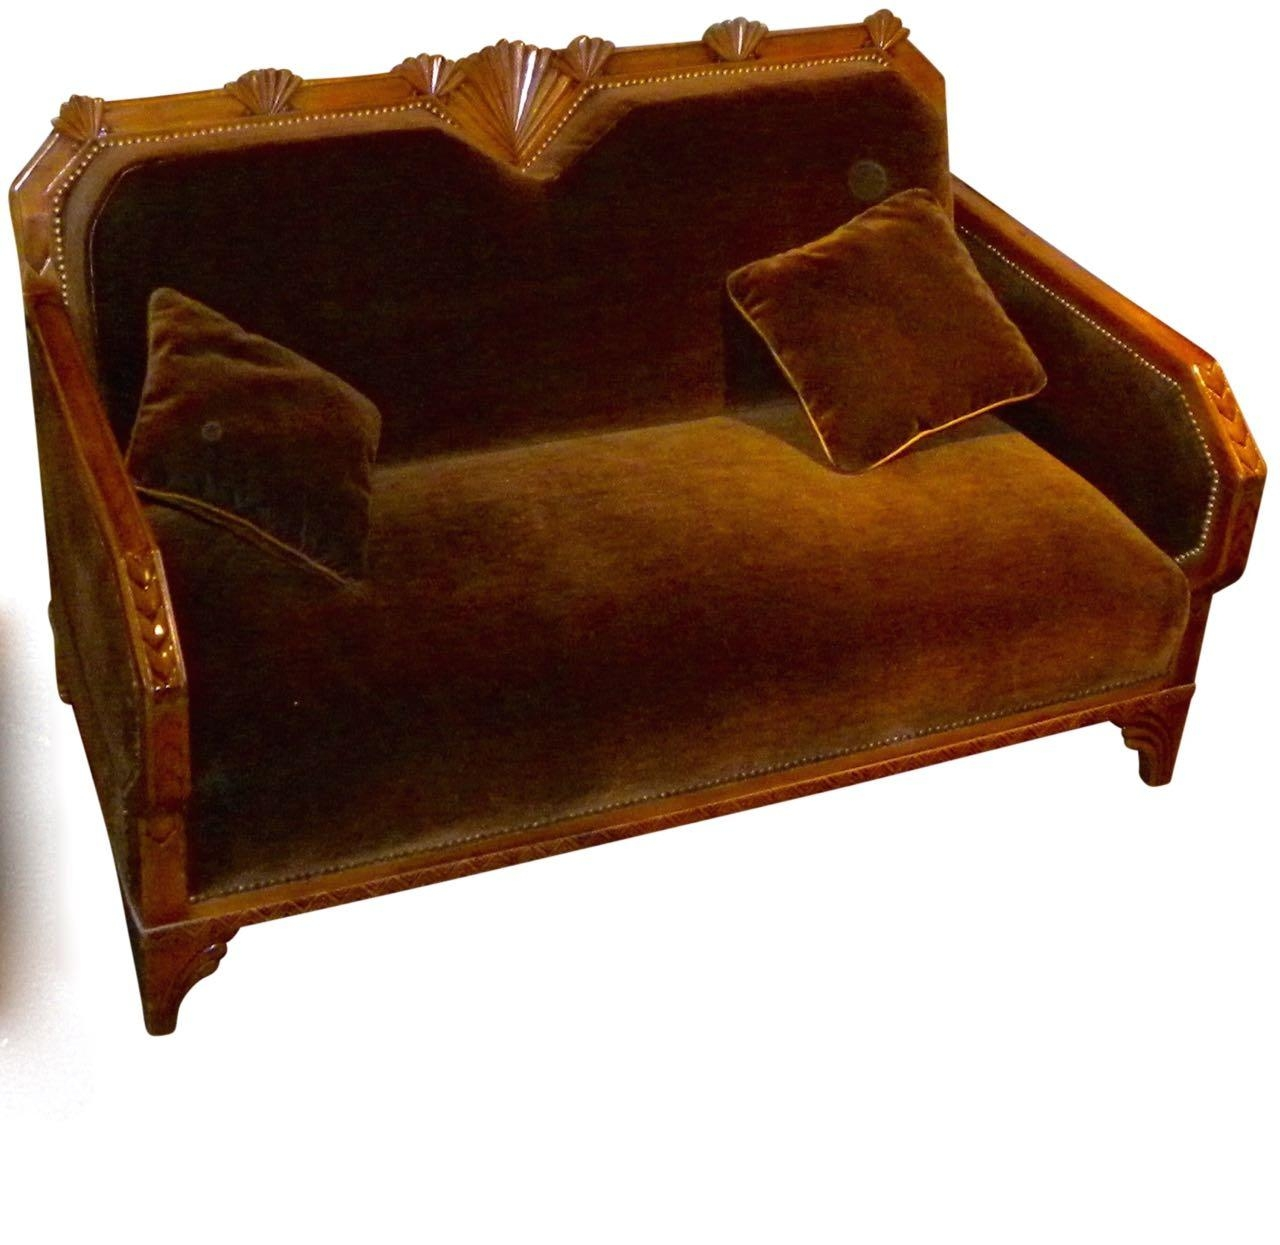 Art Deco Furniture For Sale | Seating Items | Art Deco Collection With Art Deco Sofa And Chairs (Image 6 of 20)